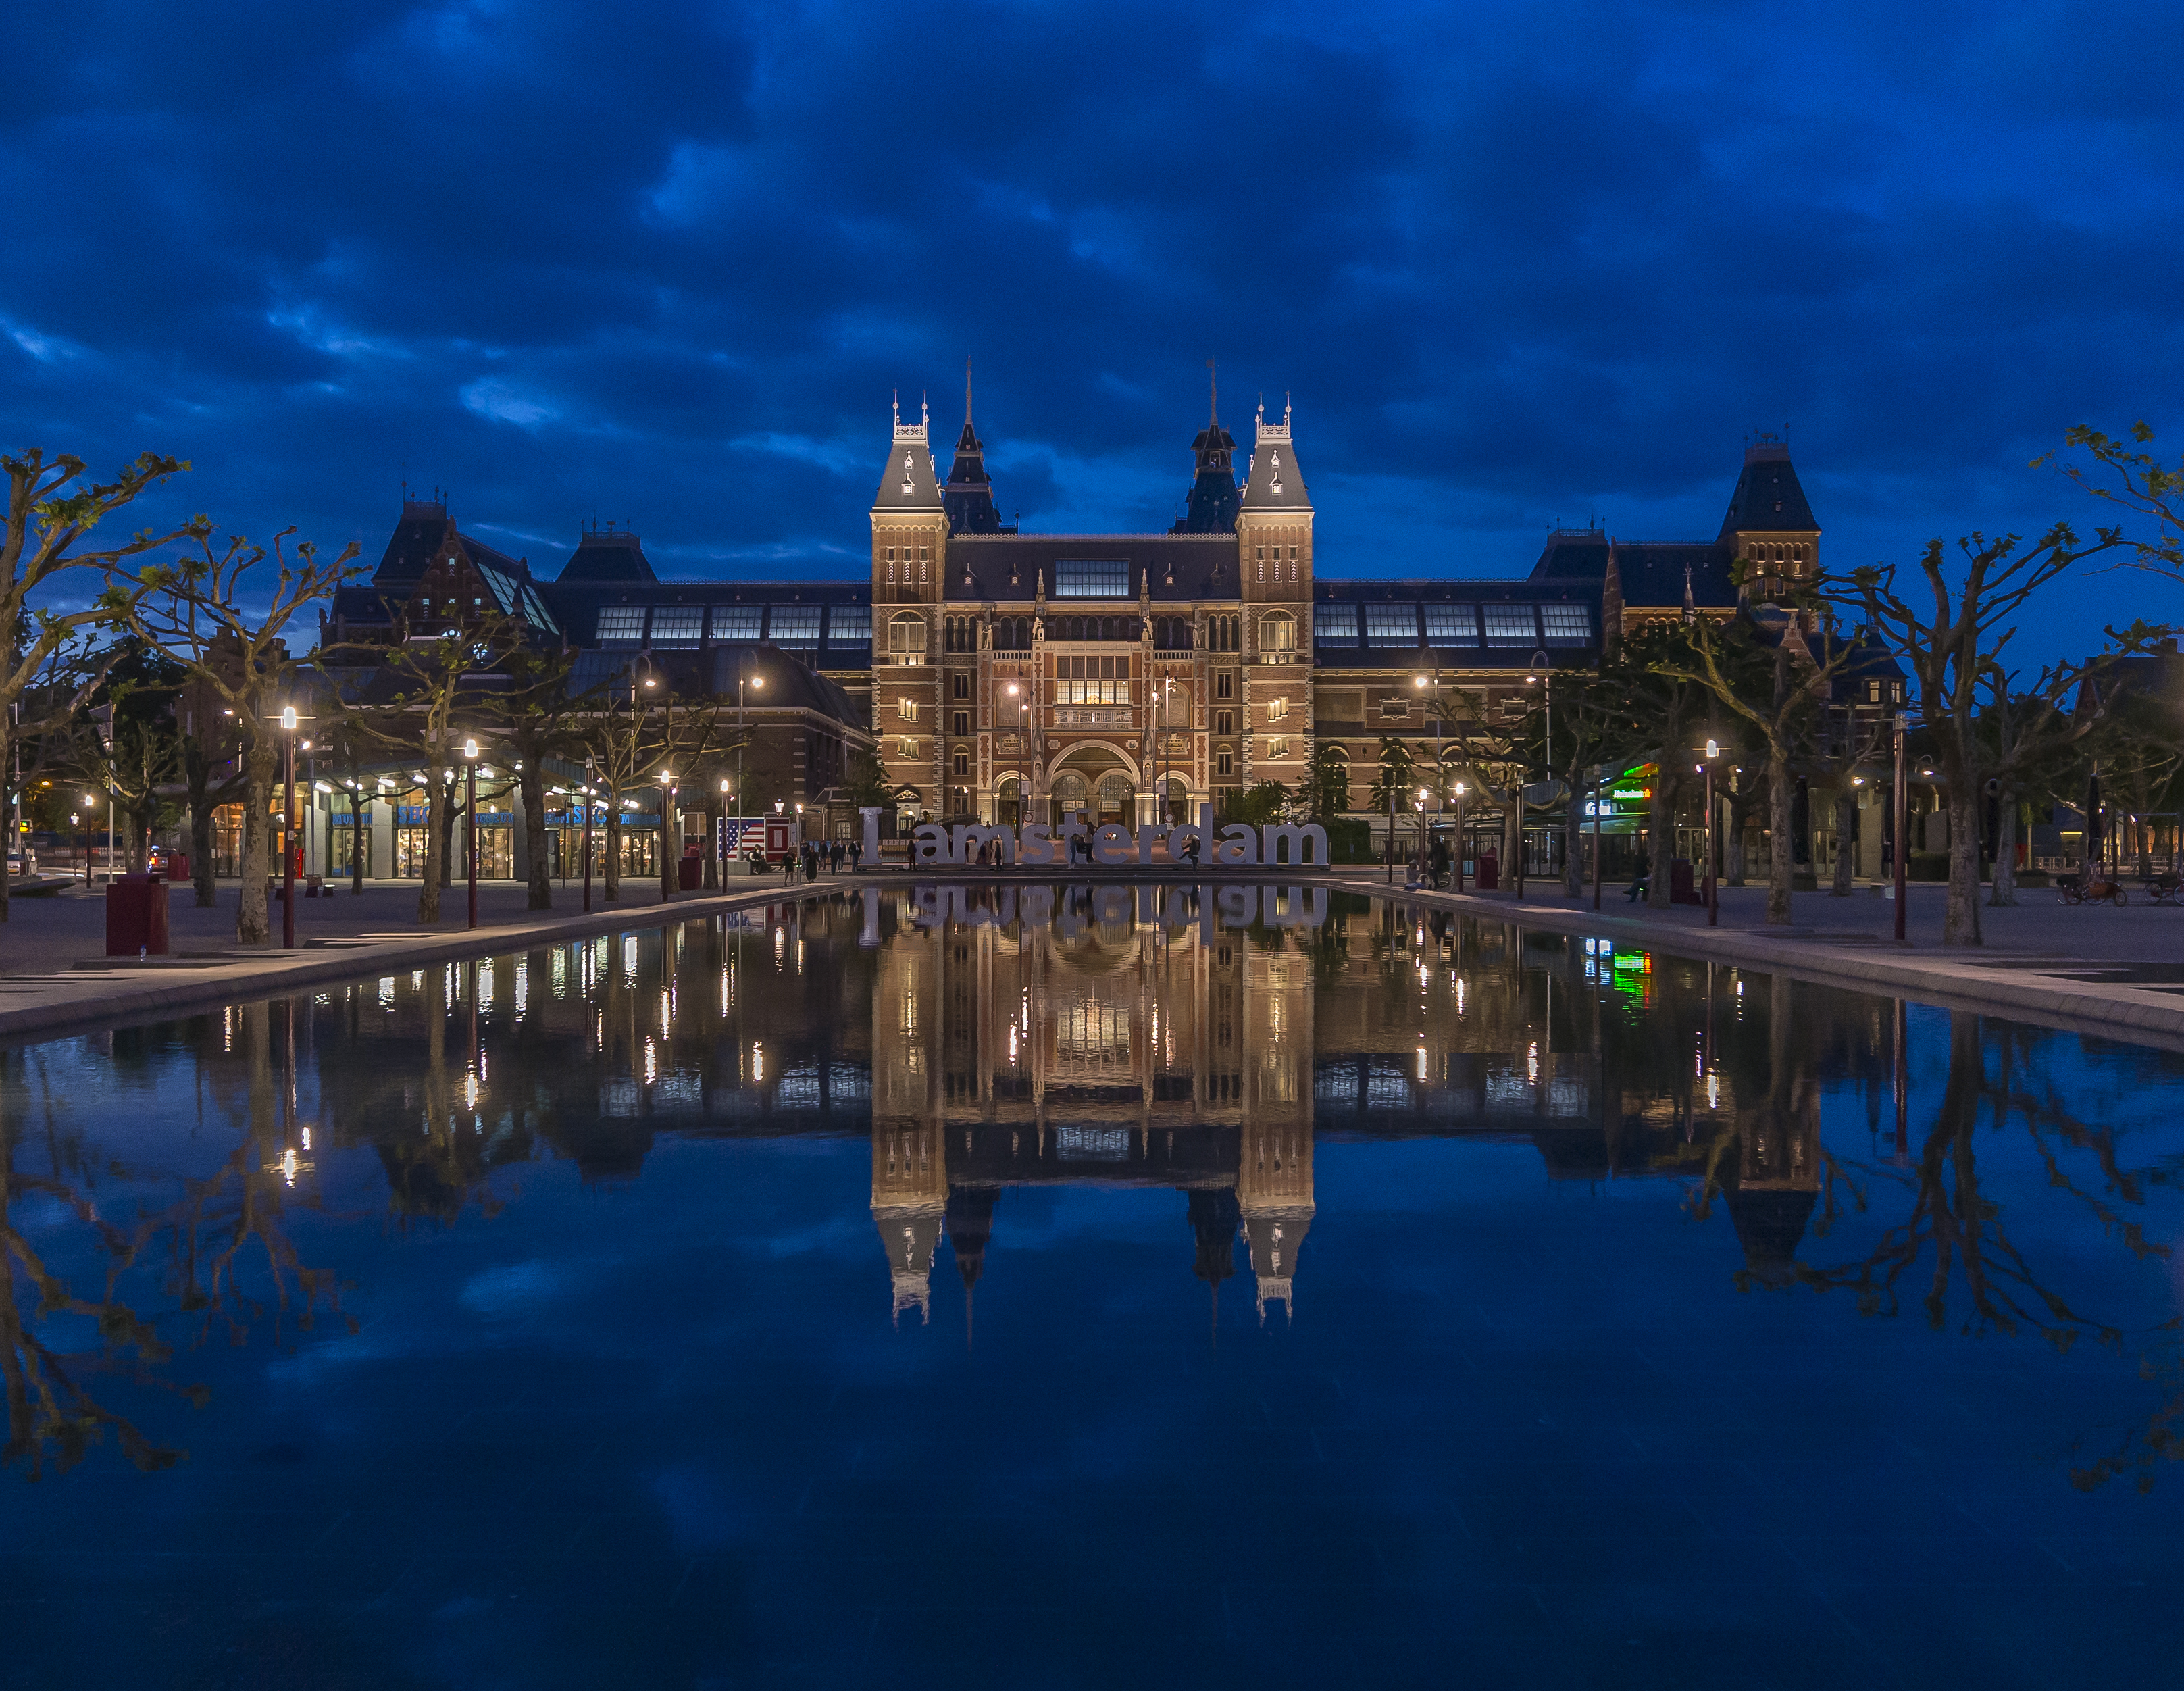 Amsterdam 39 s rijksmuseum is european museum of the year for Amsterdam museum